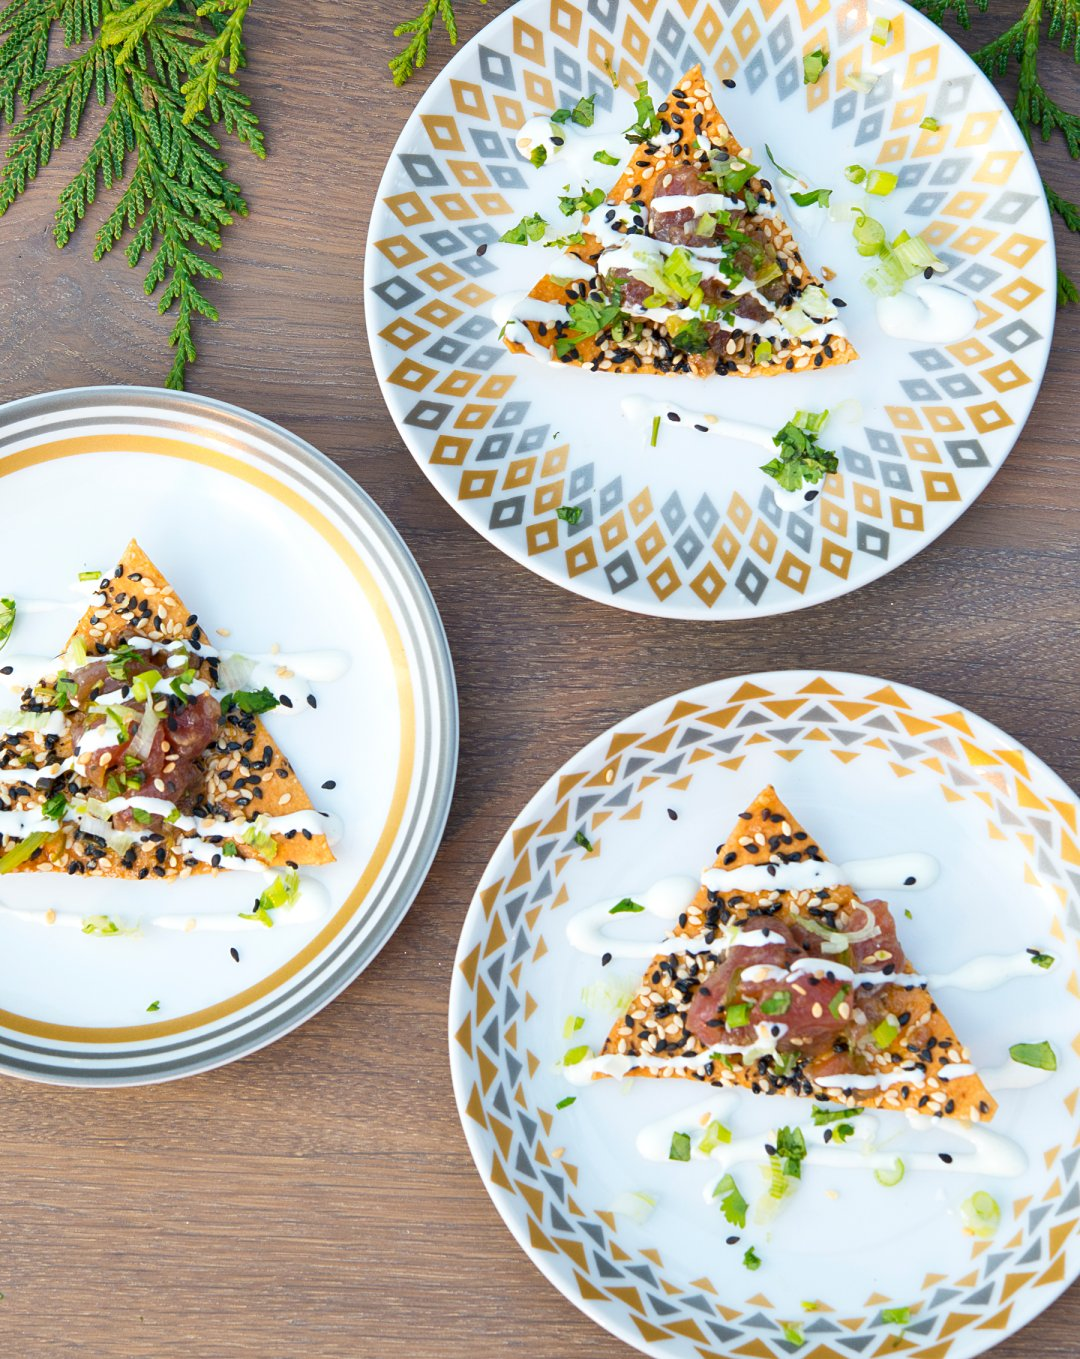 three plates with appetizers on a table with a tree branch